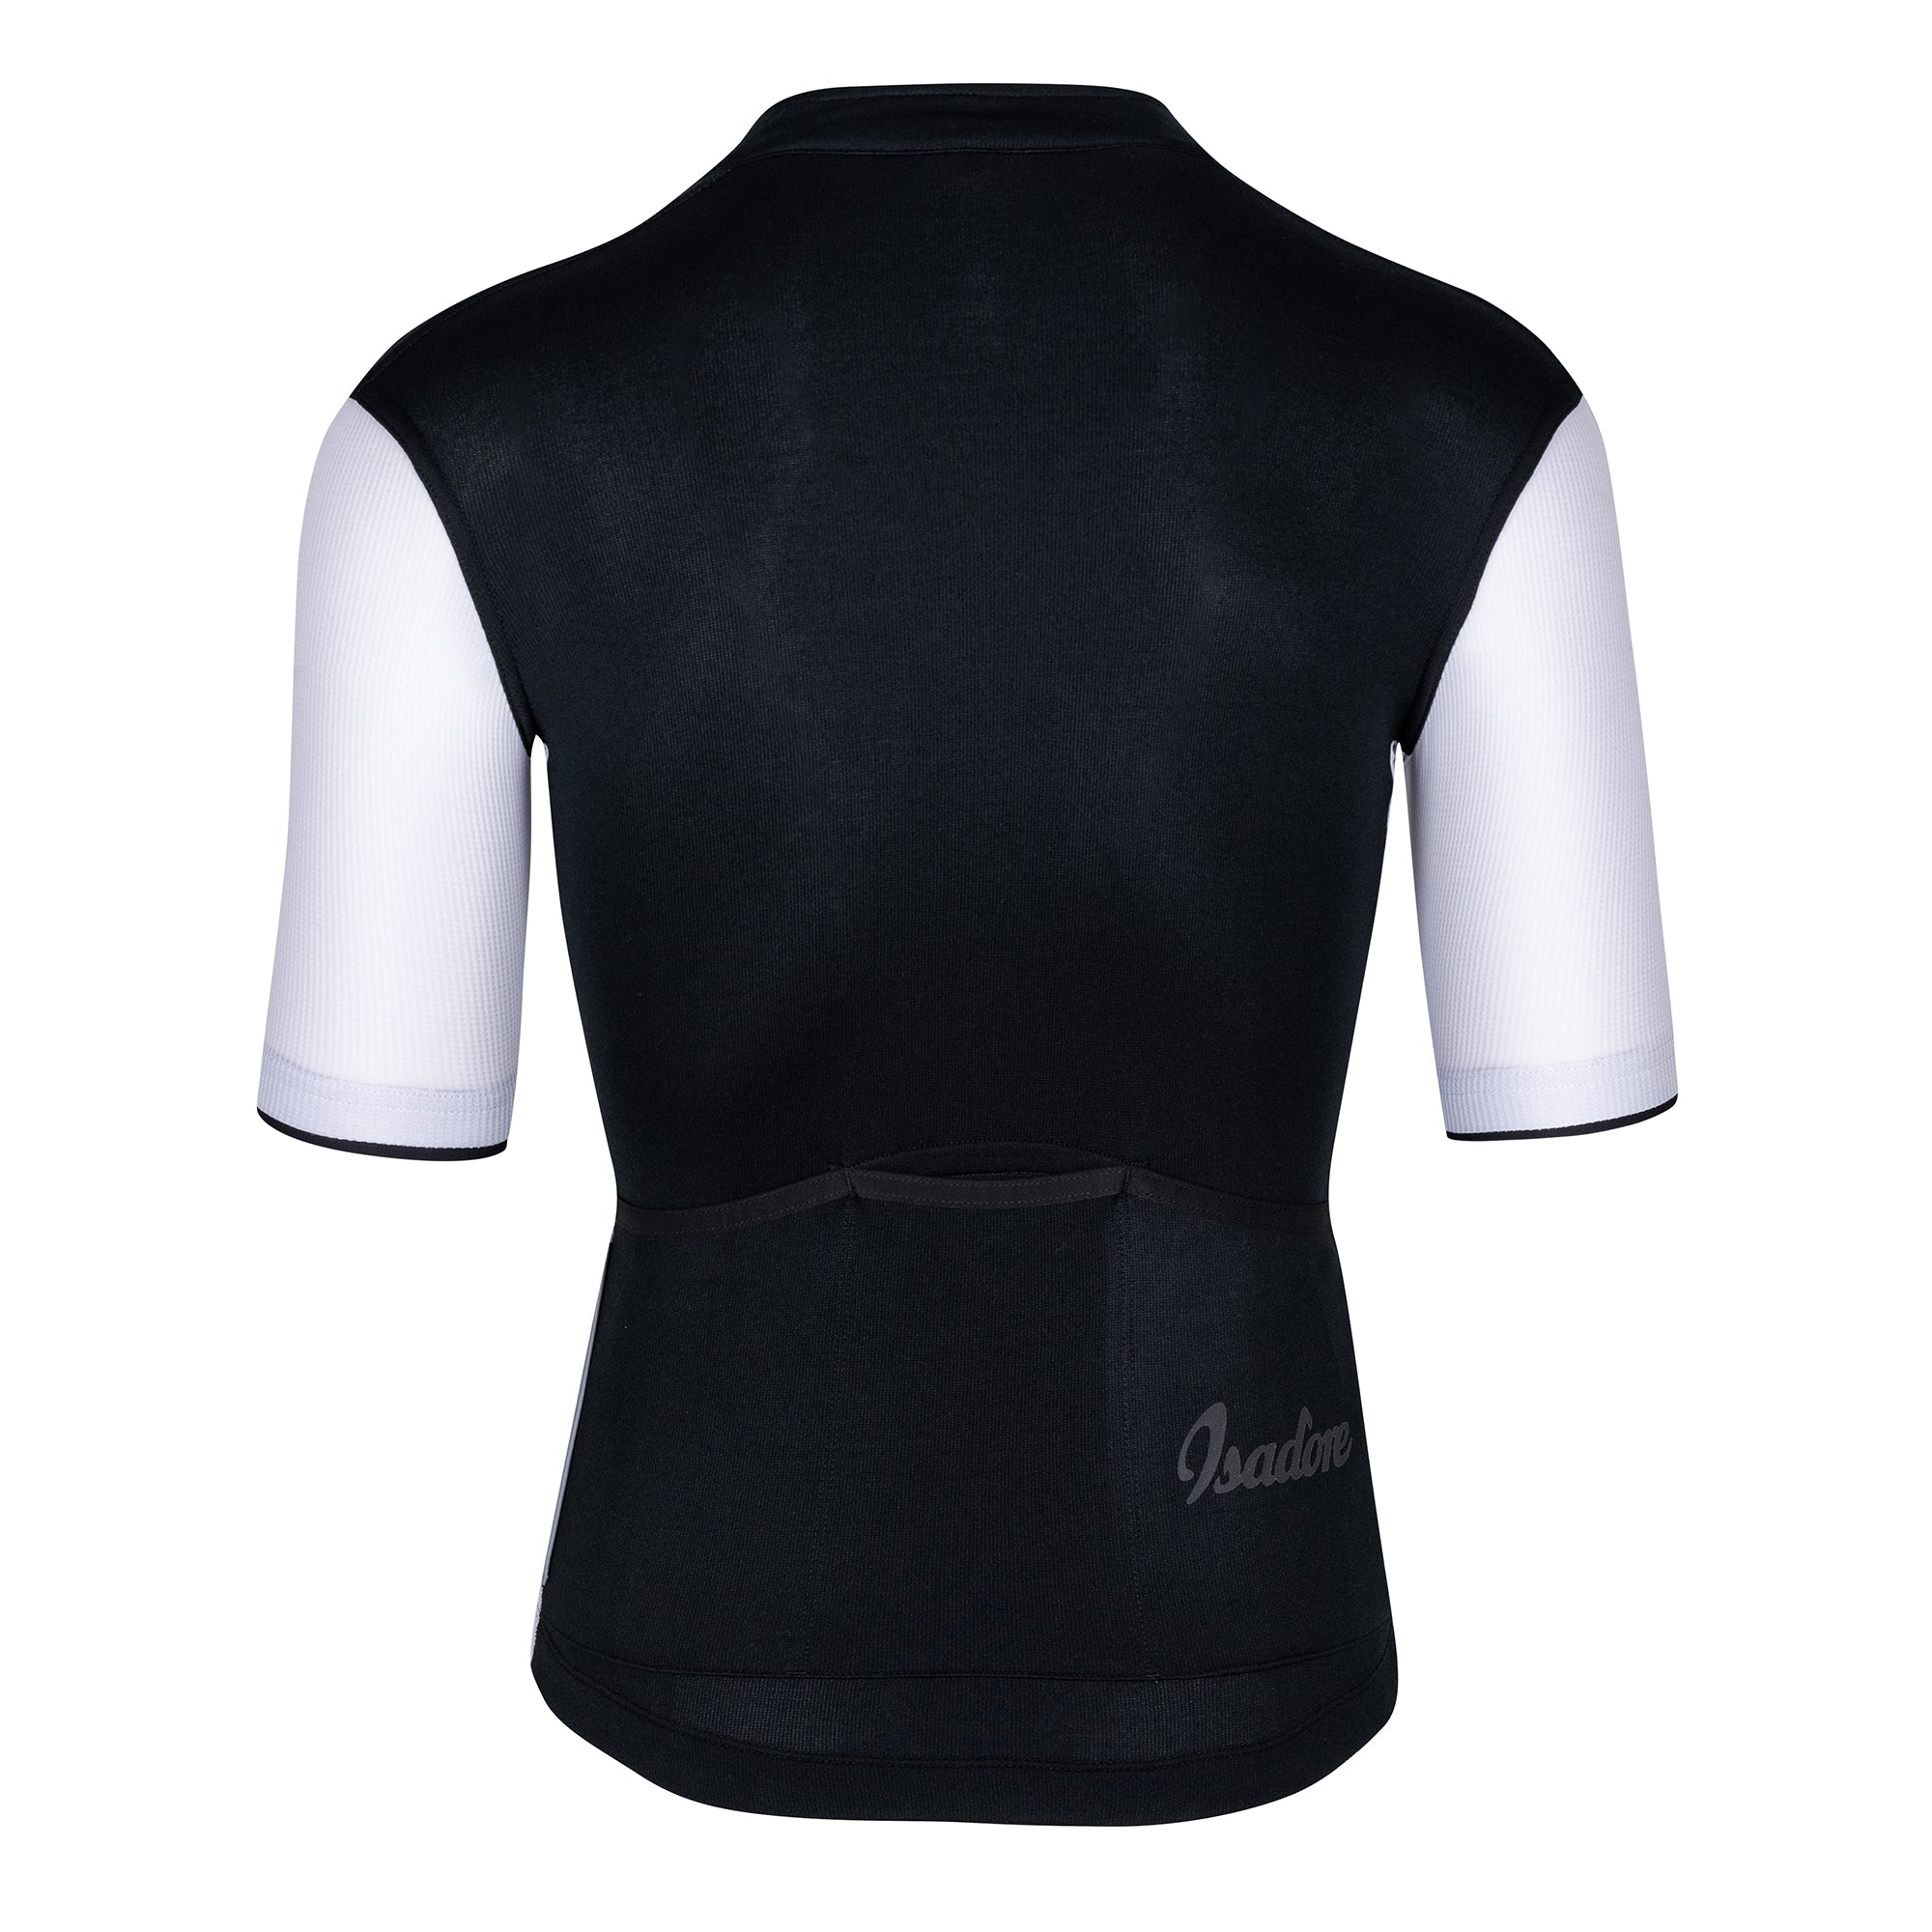 Signature Cycling Jersey - Anthracite Black/White